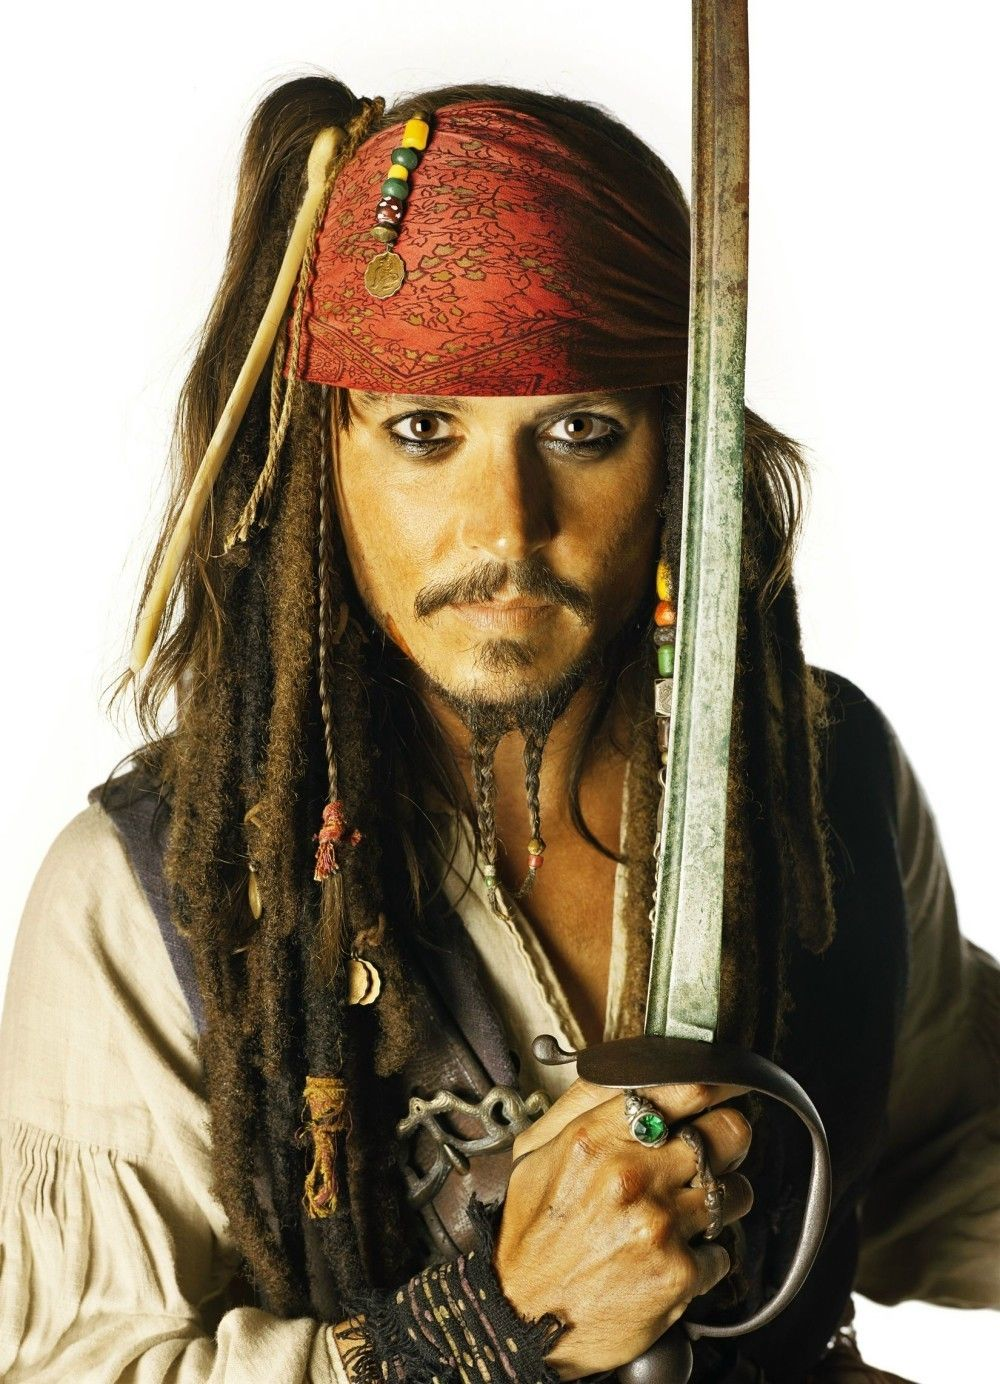 Jack Sparrow. Aye Matey And Mighty Sword Ready Fer Adventure. Ye Comin' With